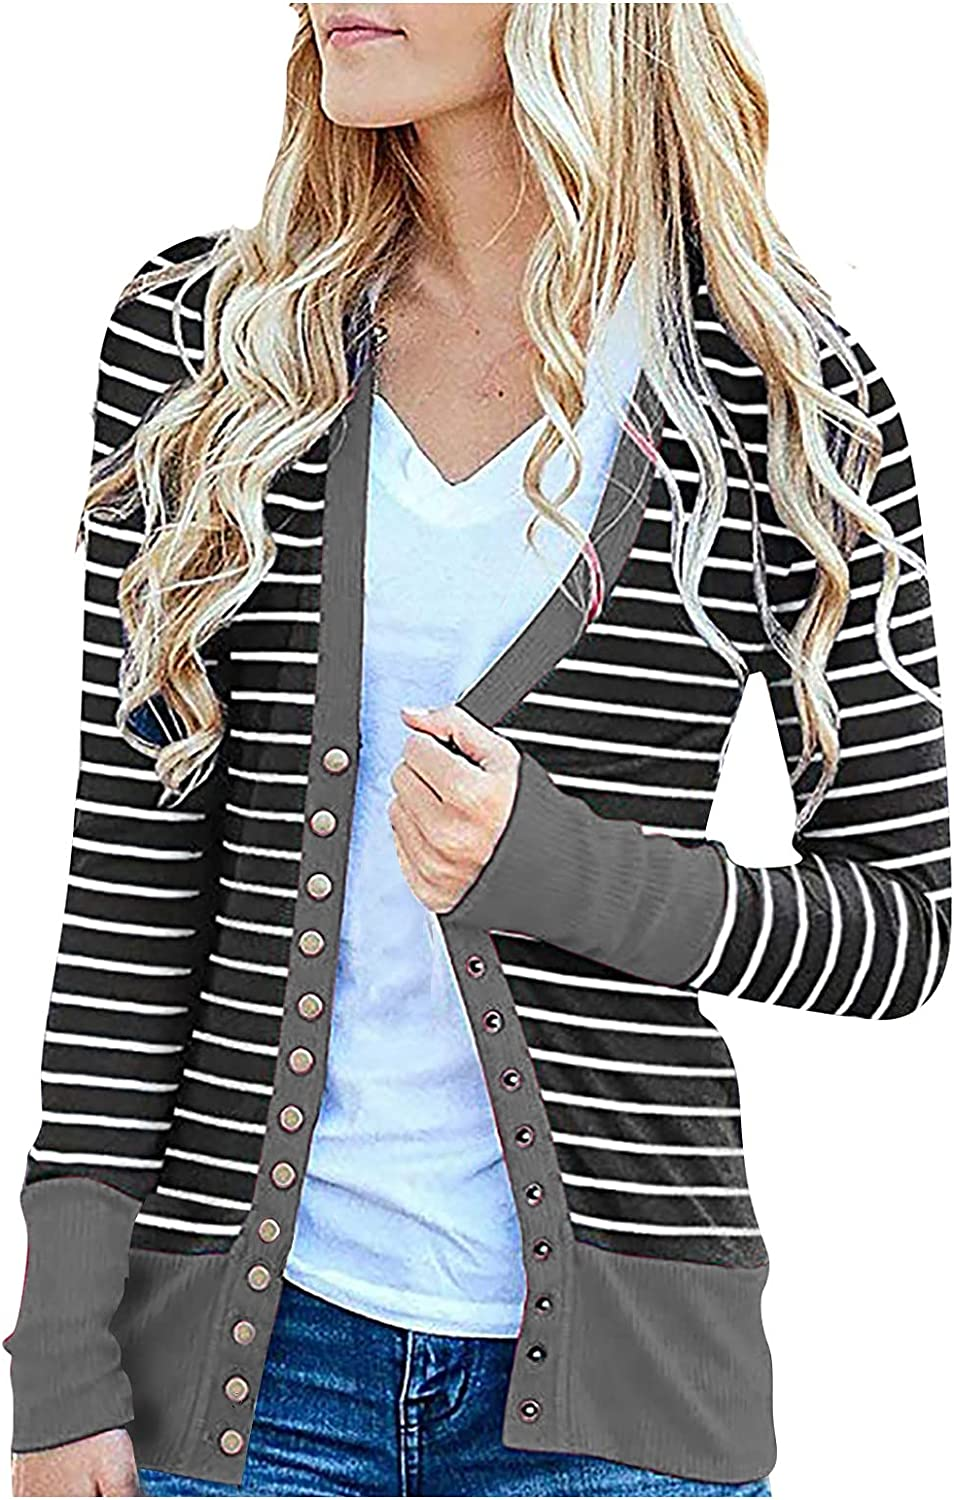 VonVonCo Womens Dress Tops Fashion Casual Striped Fit Overcoat Stitching Long-Sleeved Cardigan Jacket Tops